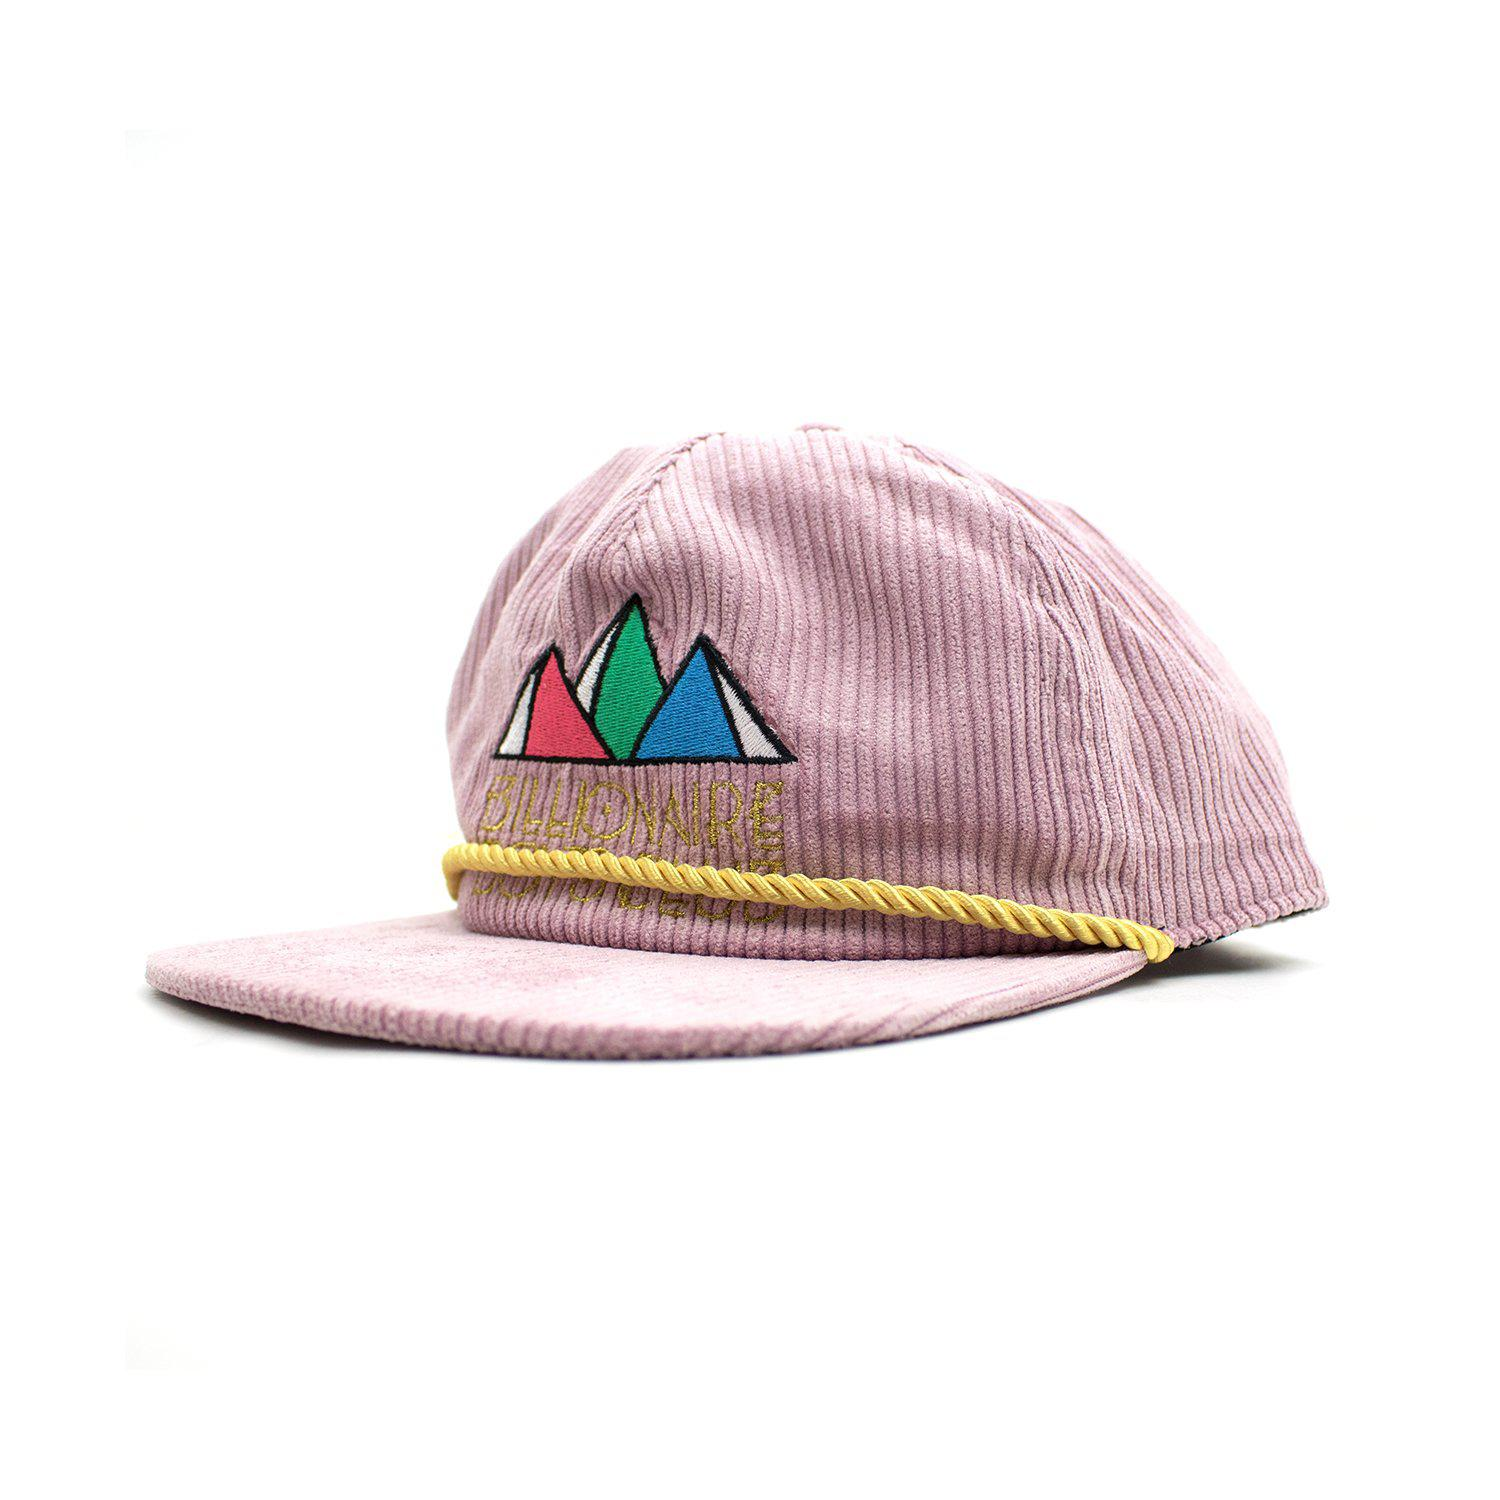 BBCICECREAM Pyramid Snapback in Pink for Men - Lyst e98062bf5d6